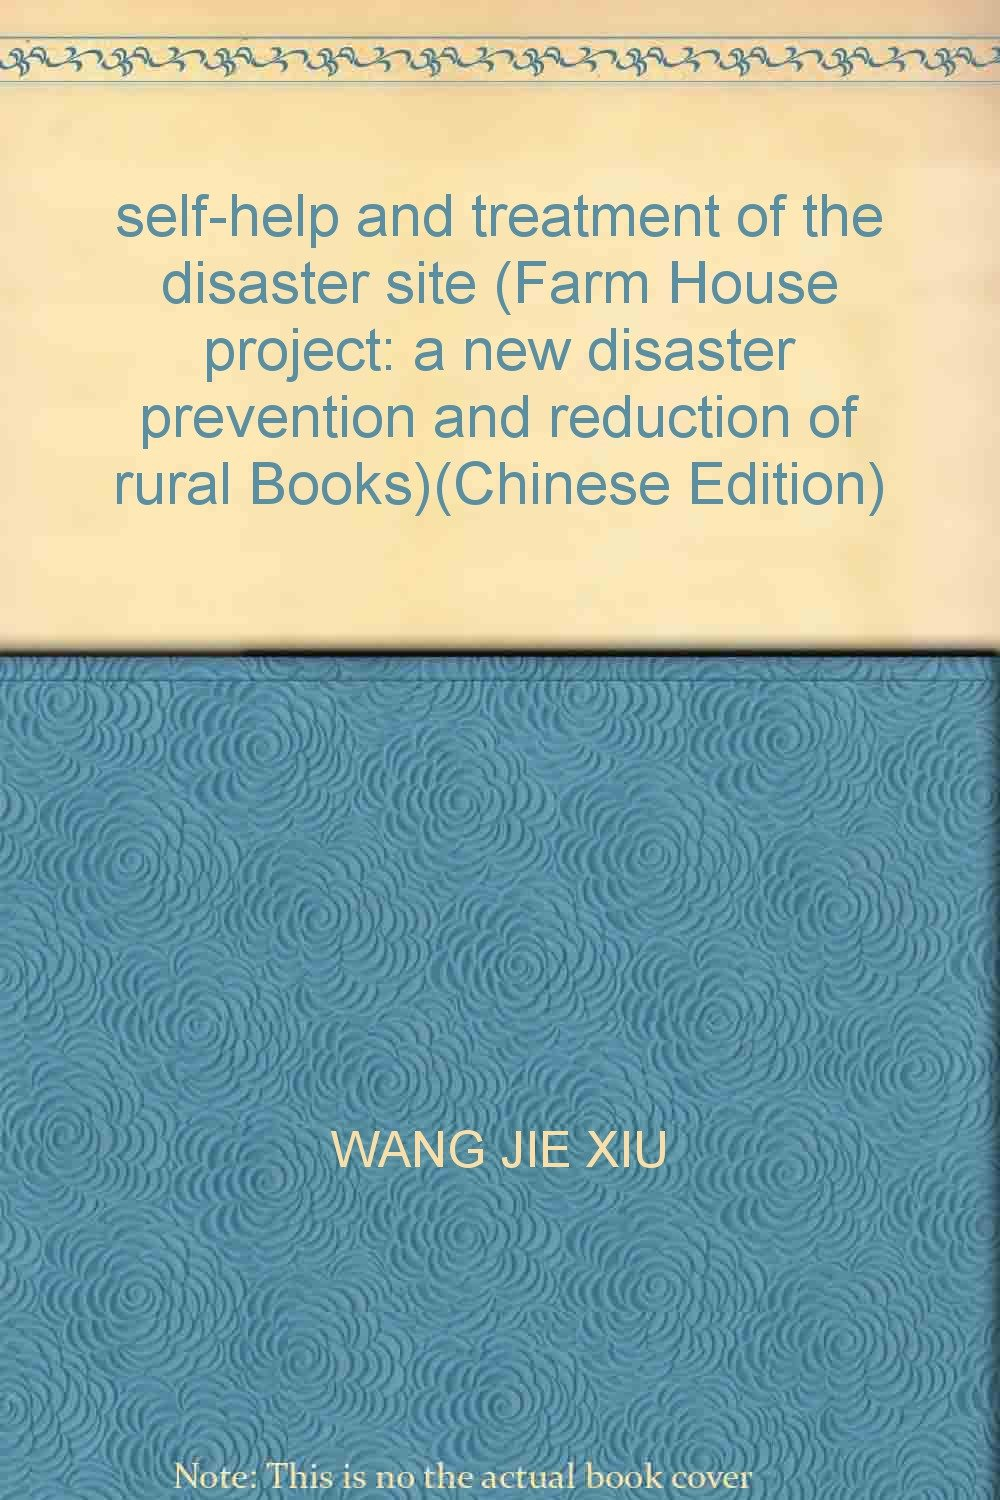 self-help and treatment of the disaster site (Farm House project: a new disaster prevention and reduction of rural Books)(Chinese Edition) PDF